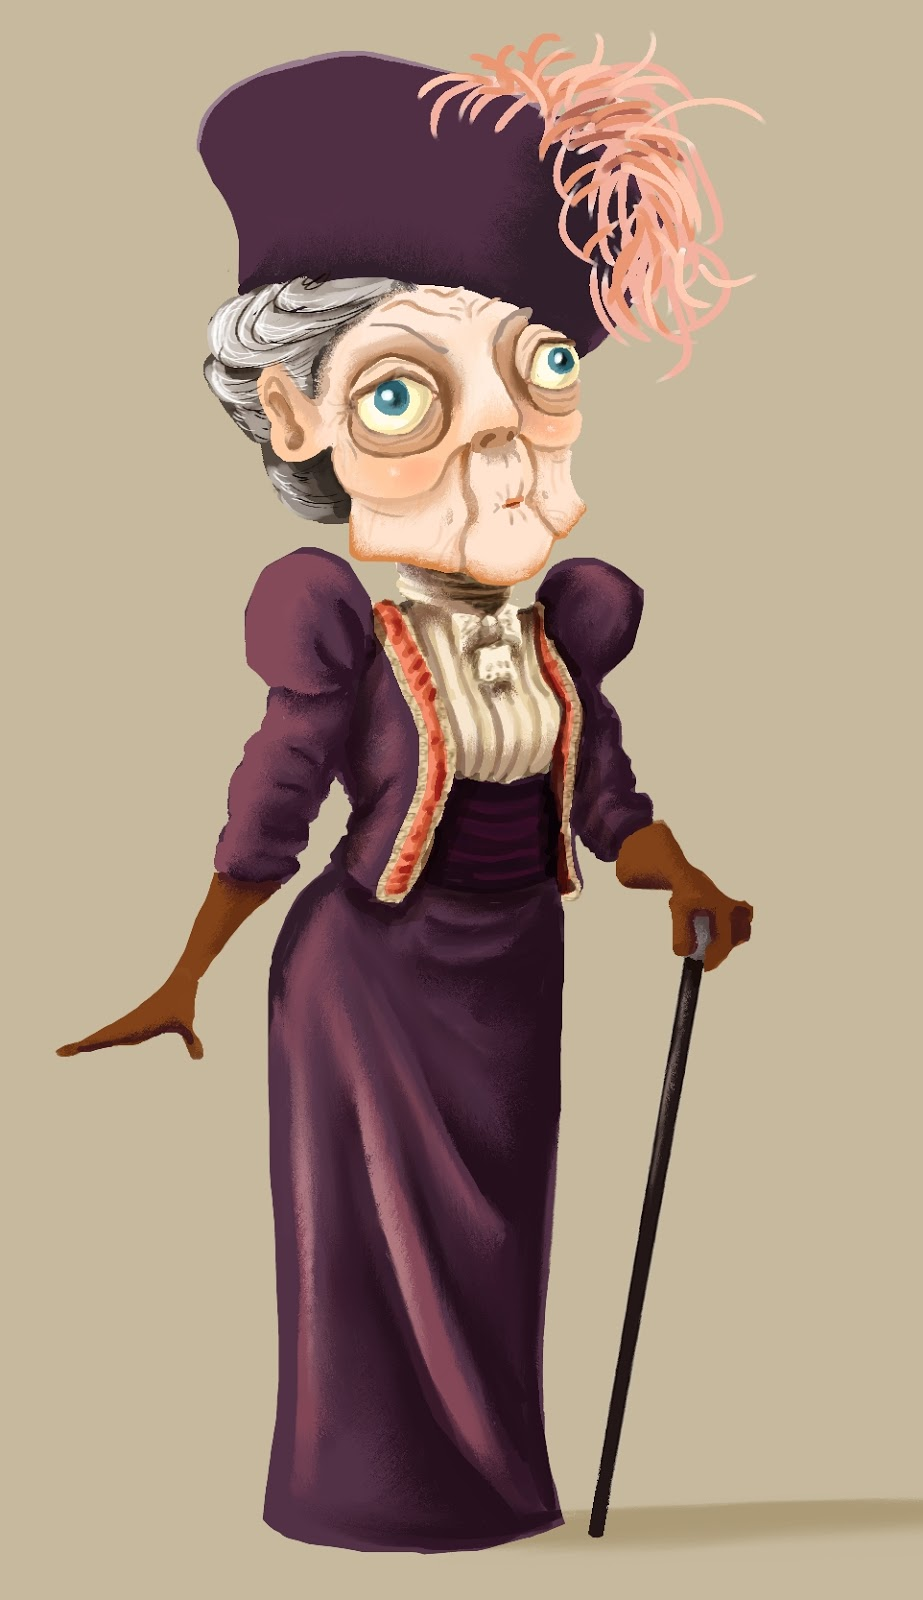 Has Anyone Seen My Glasses?: Welcome Back, Downton!